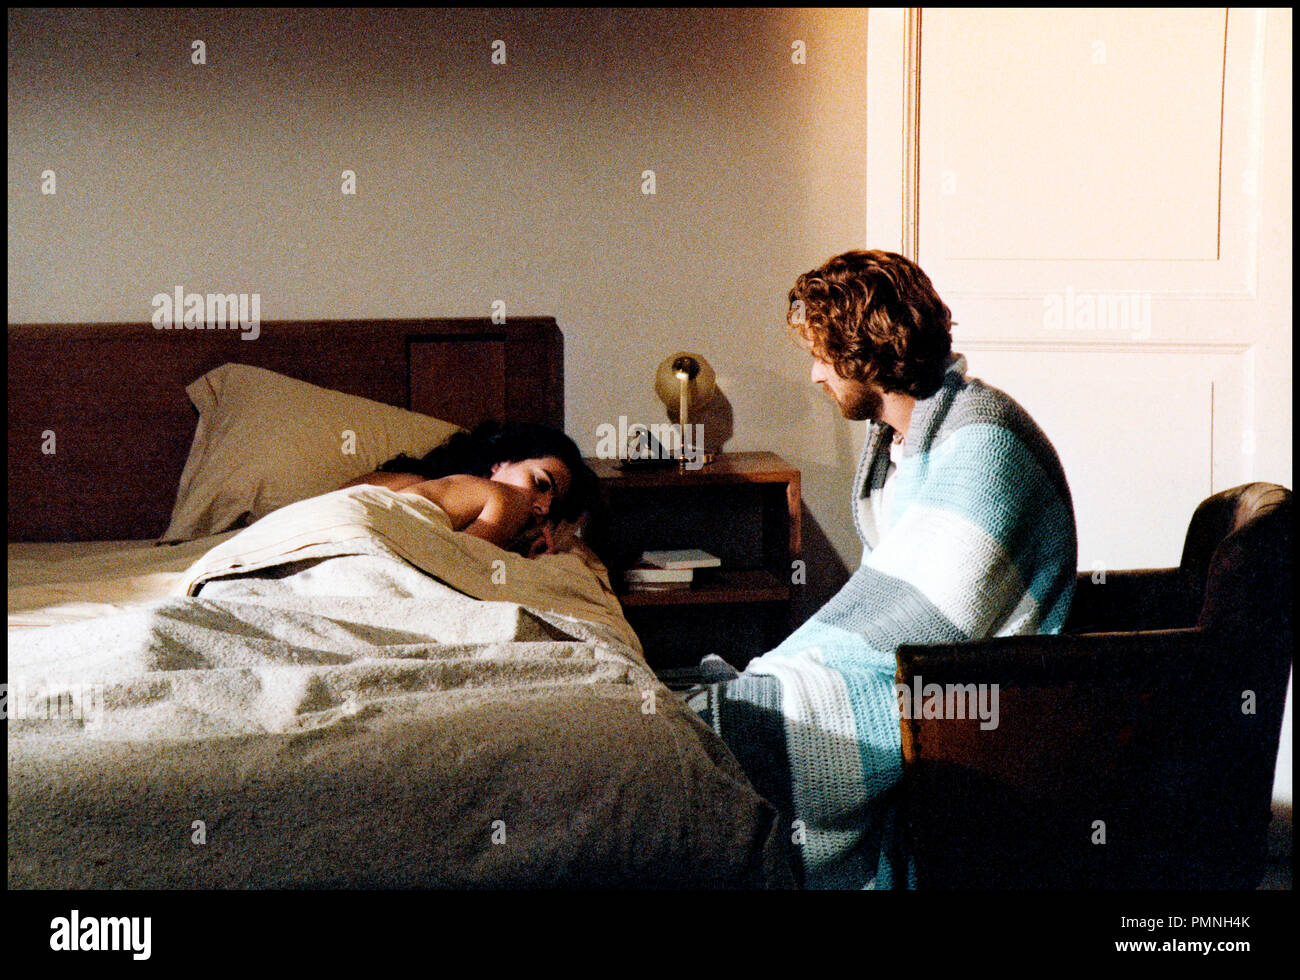 La Chambre Ardente Film Laura Morante Stock Photos And Laura Morante Stock Images